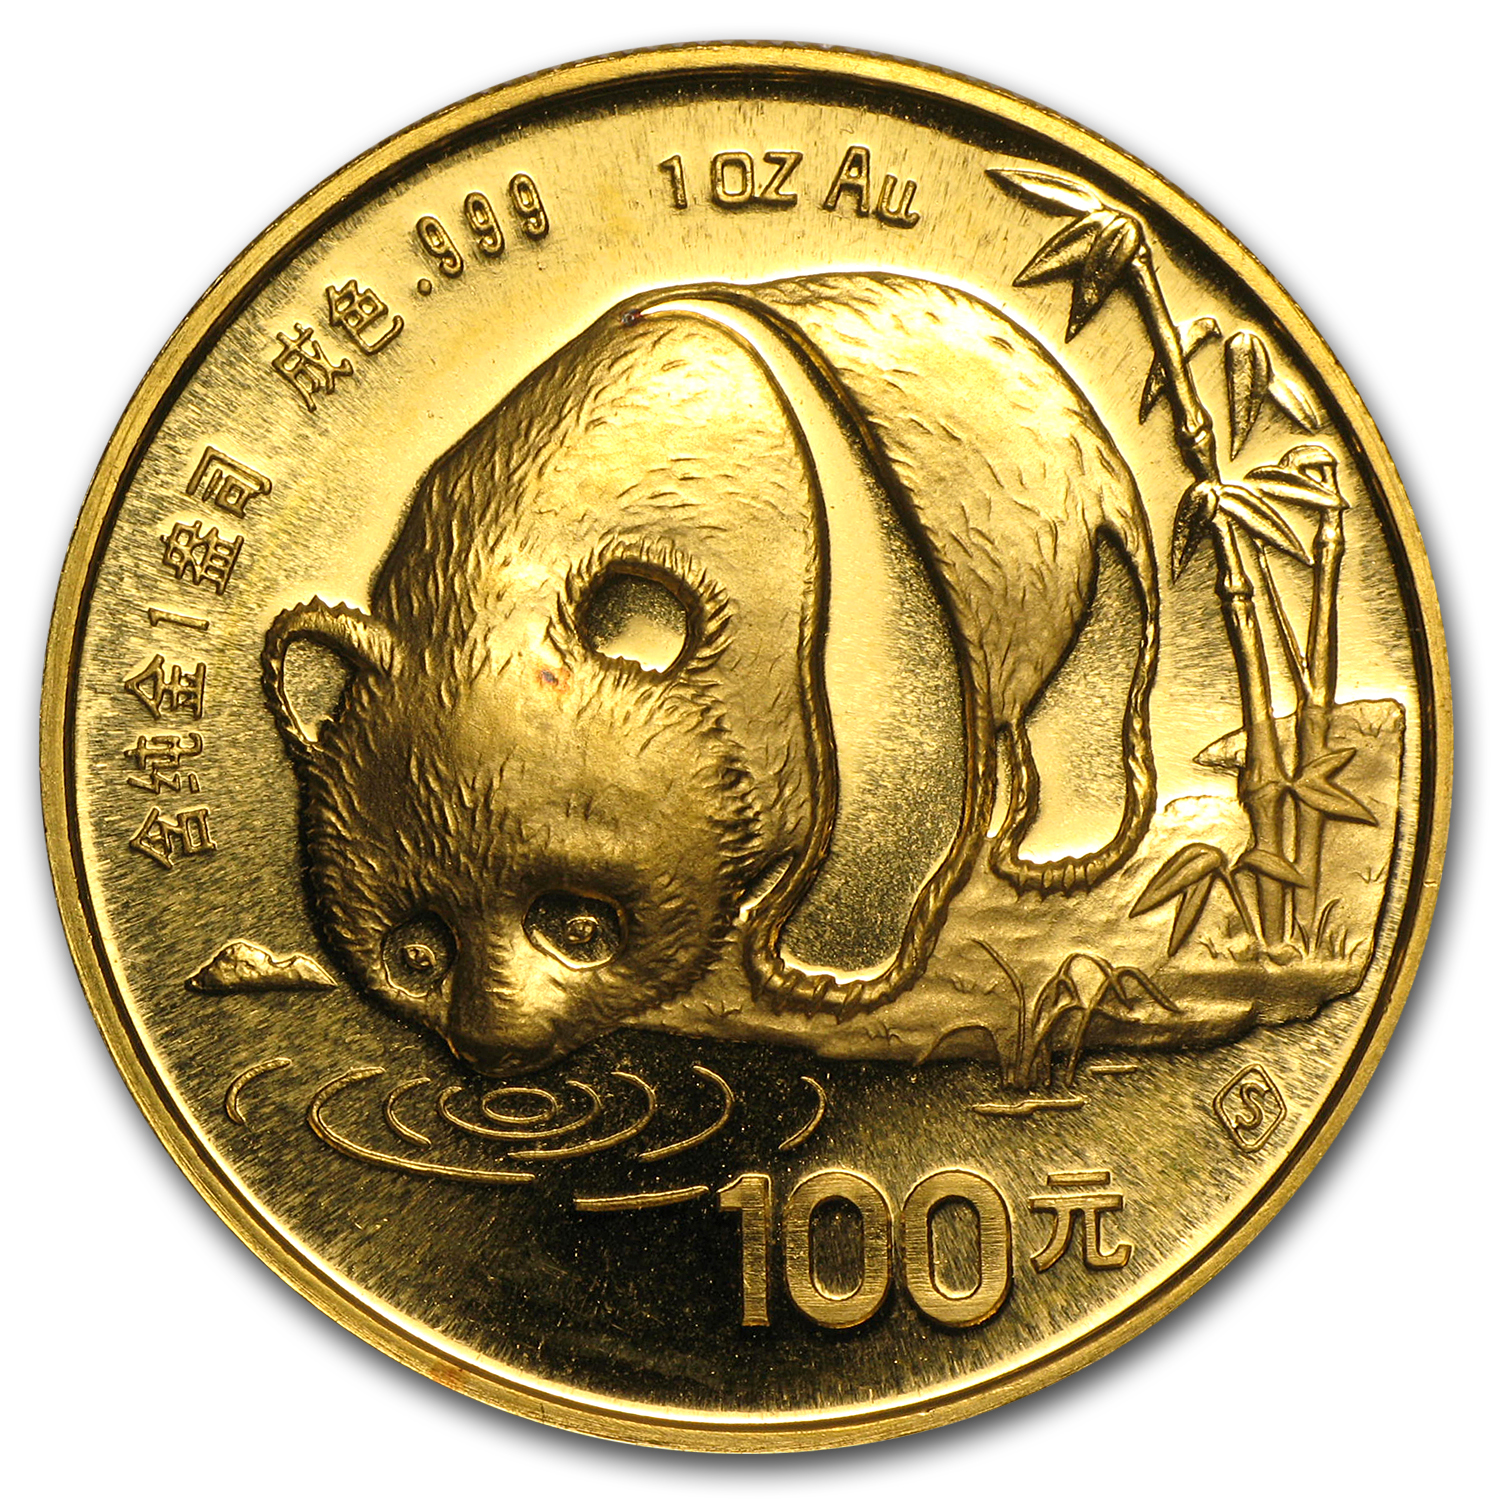 1 oz Gold Chinese Panda BU - Random Year (Not Sealed)